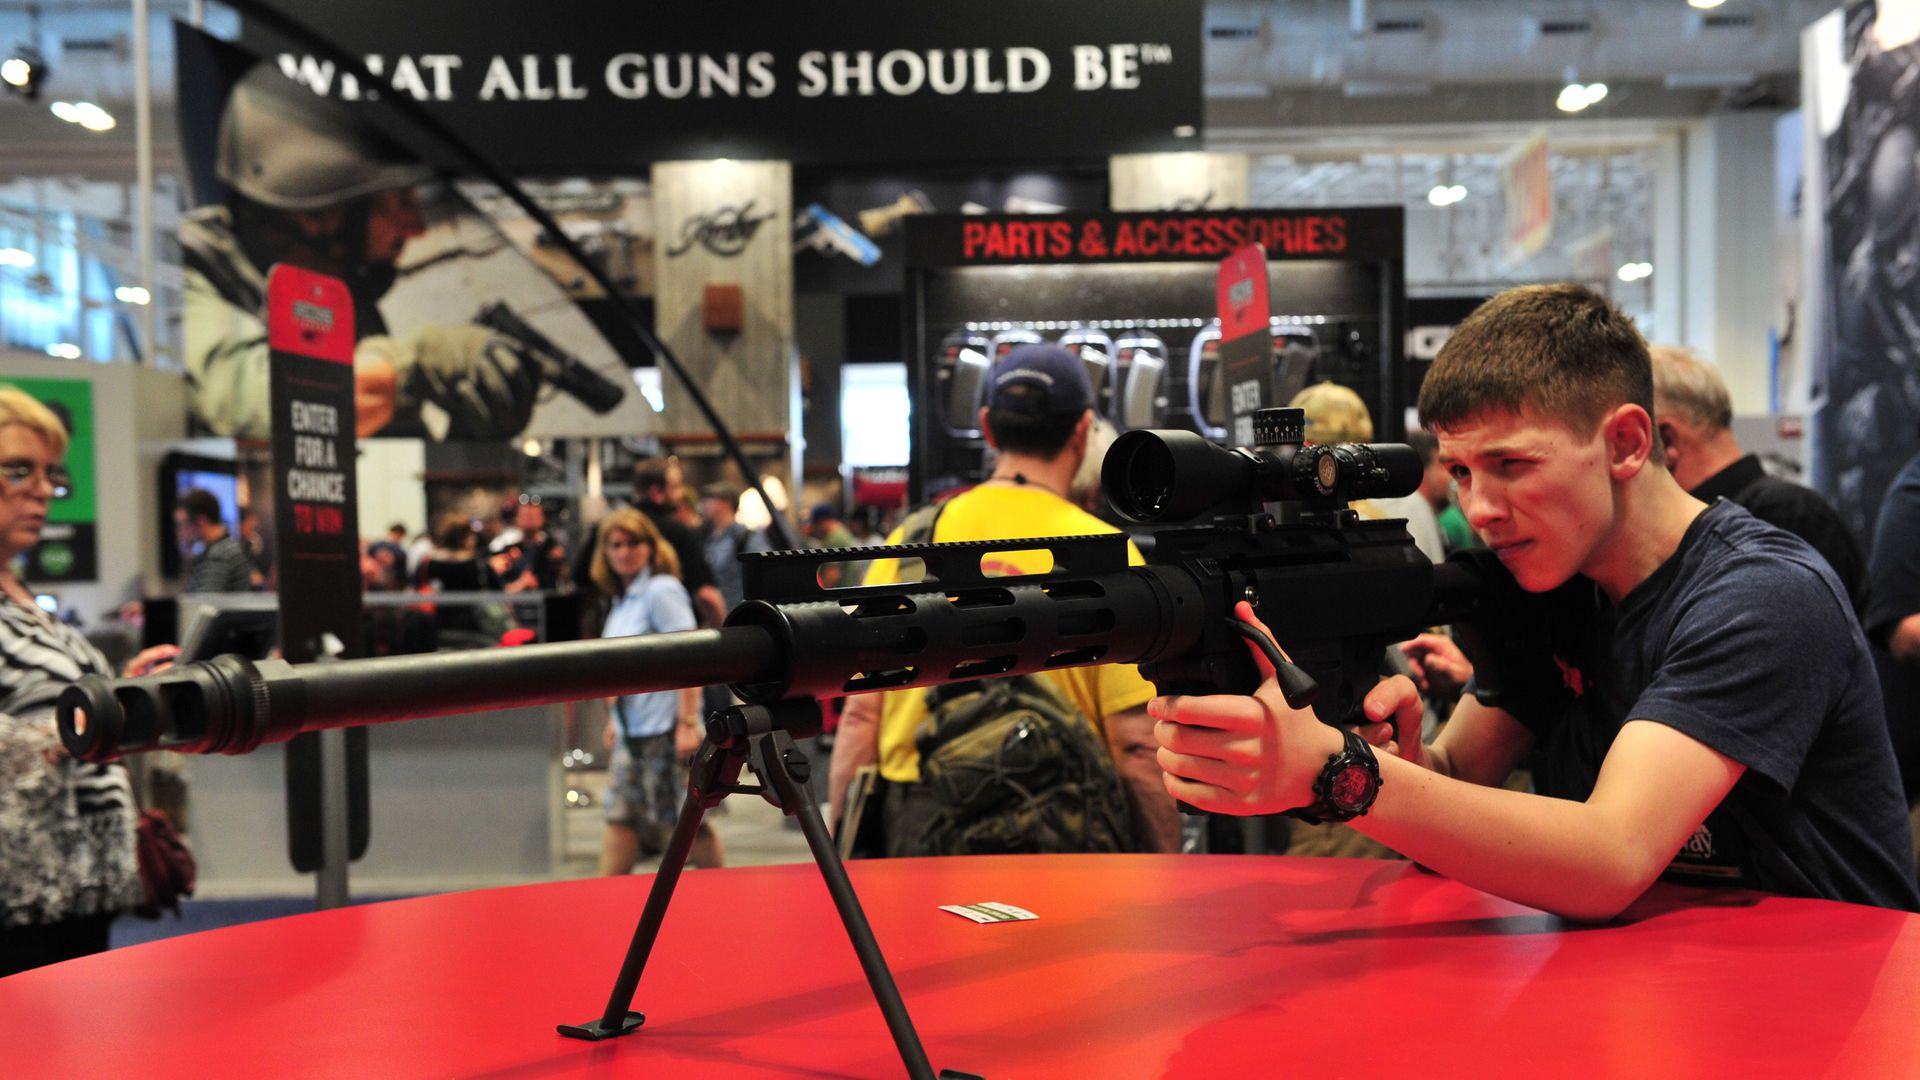 Man tries out Bushmaster rifle at gun show.